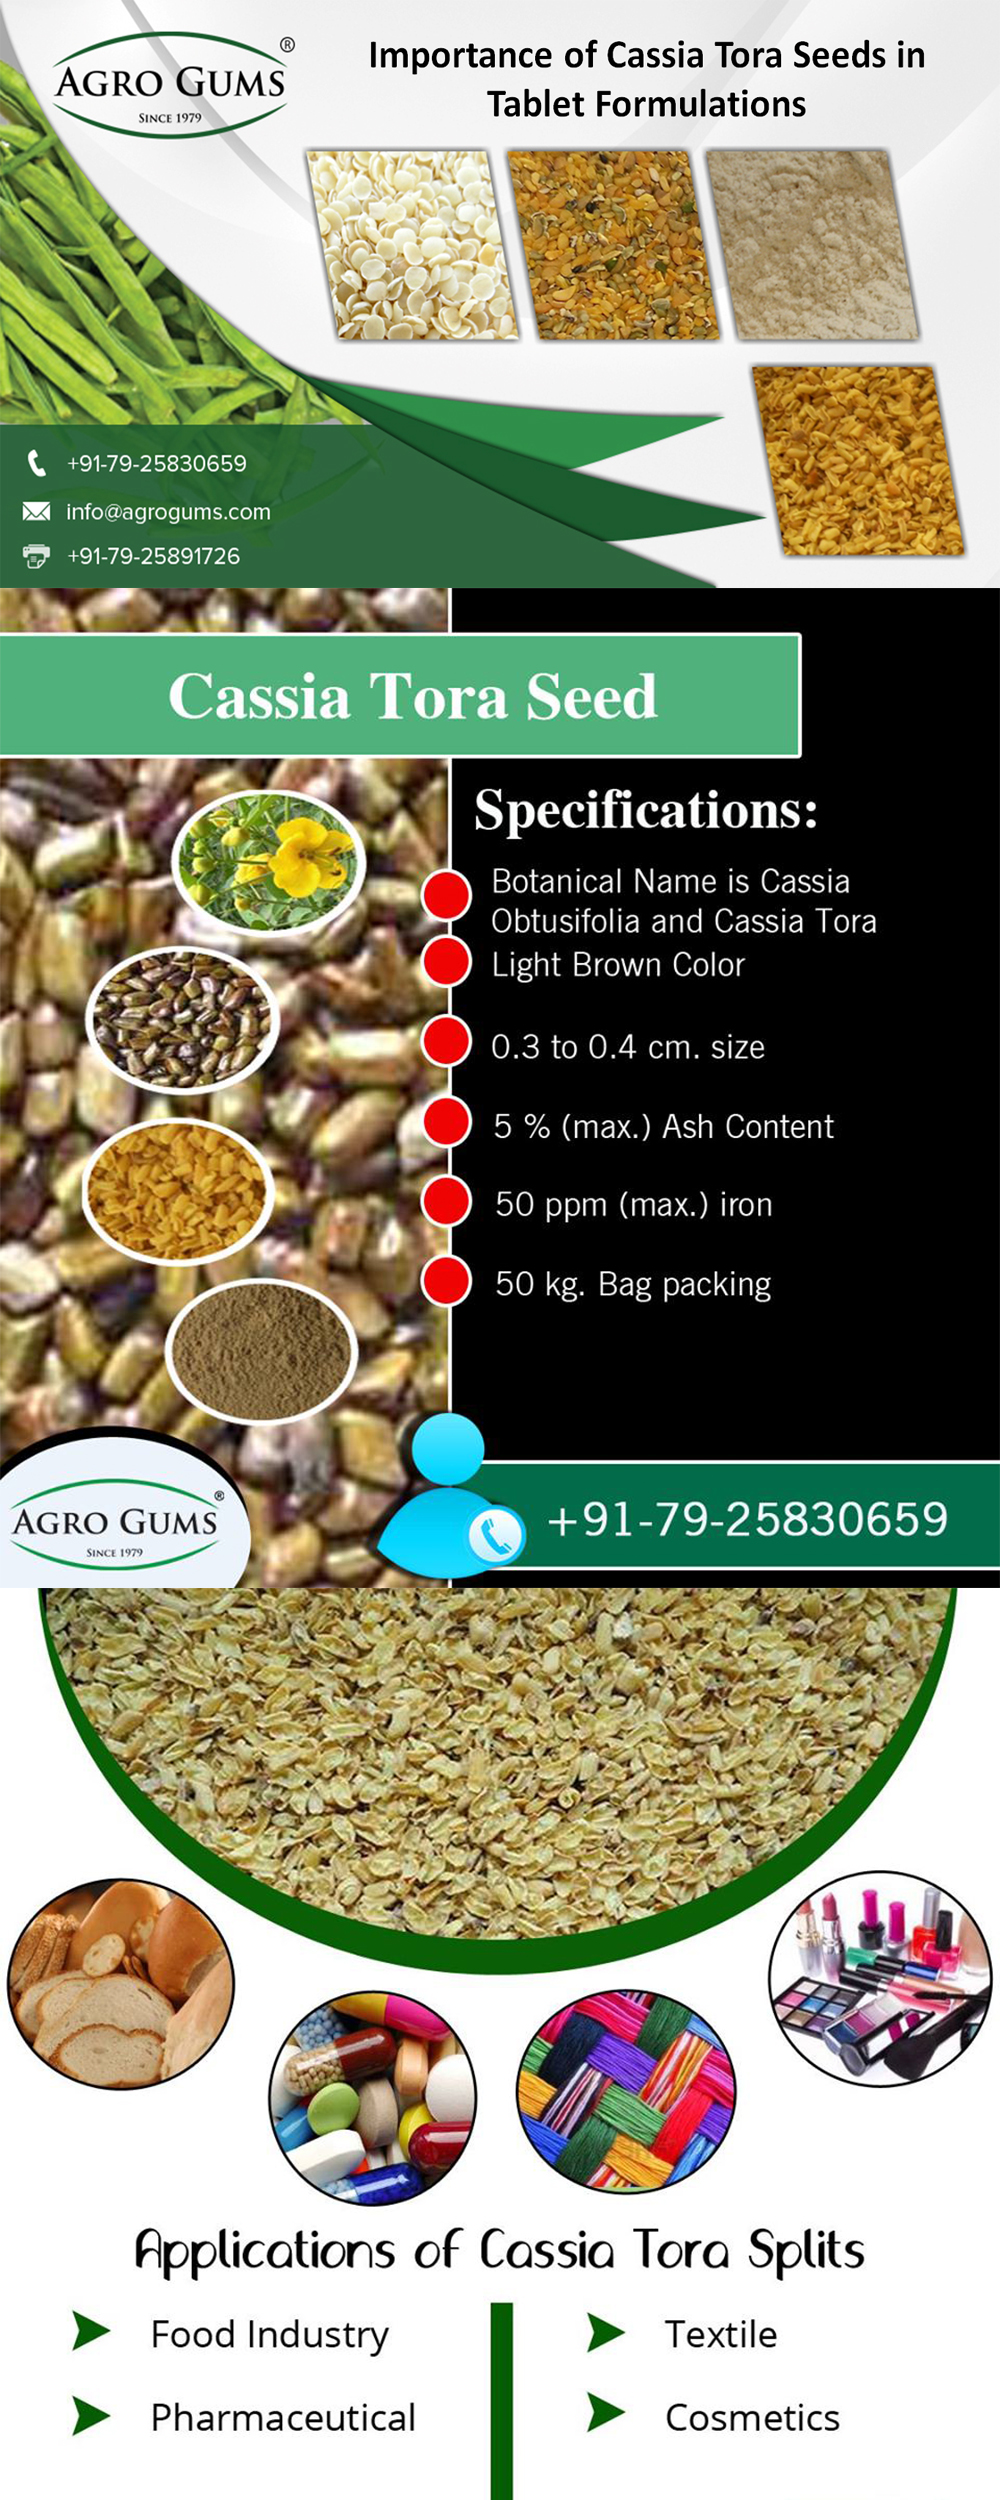 Importance of Cassia Tora Seeds in Tablet Formulations